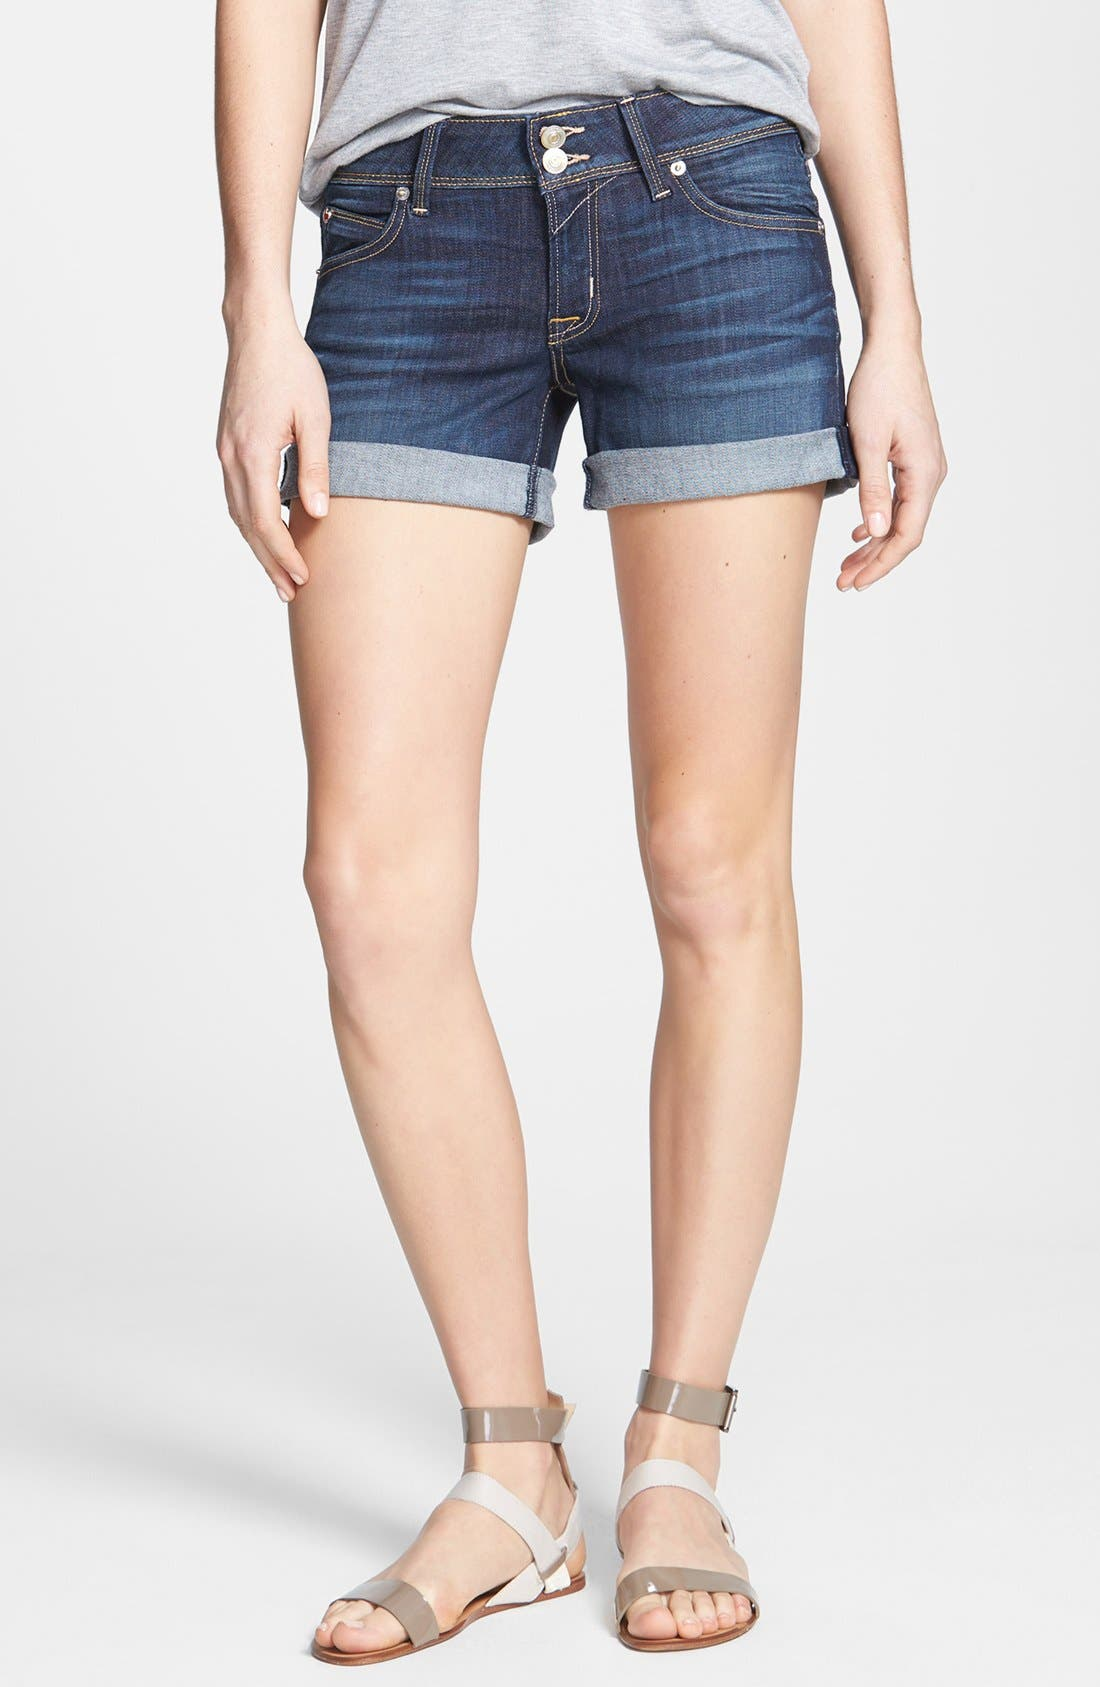 Alternate Image 1 Selected - Hudson Jeans 'Croxley' Cuff Denim Shorts (Stella)